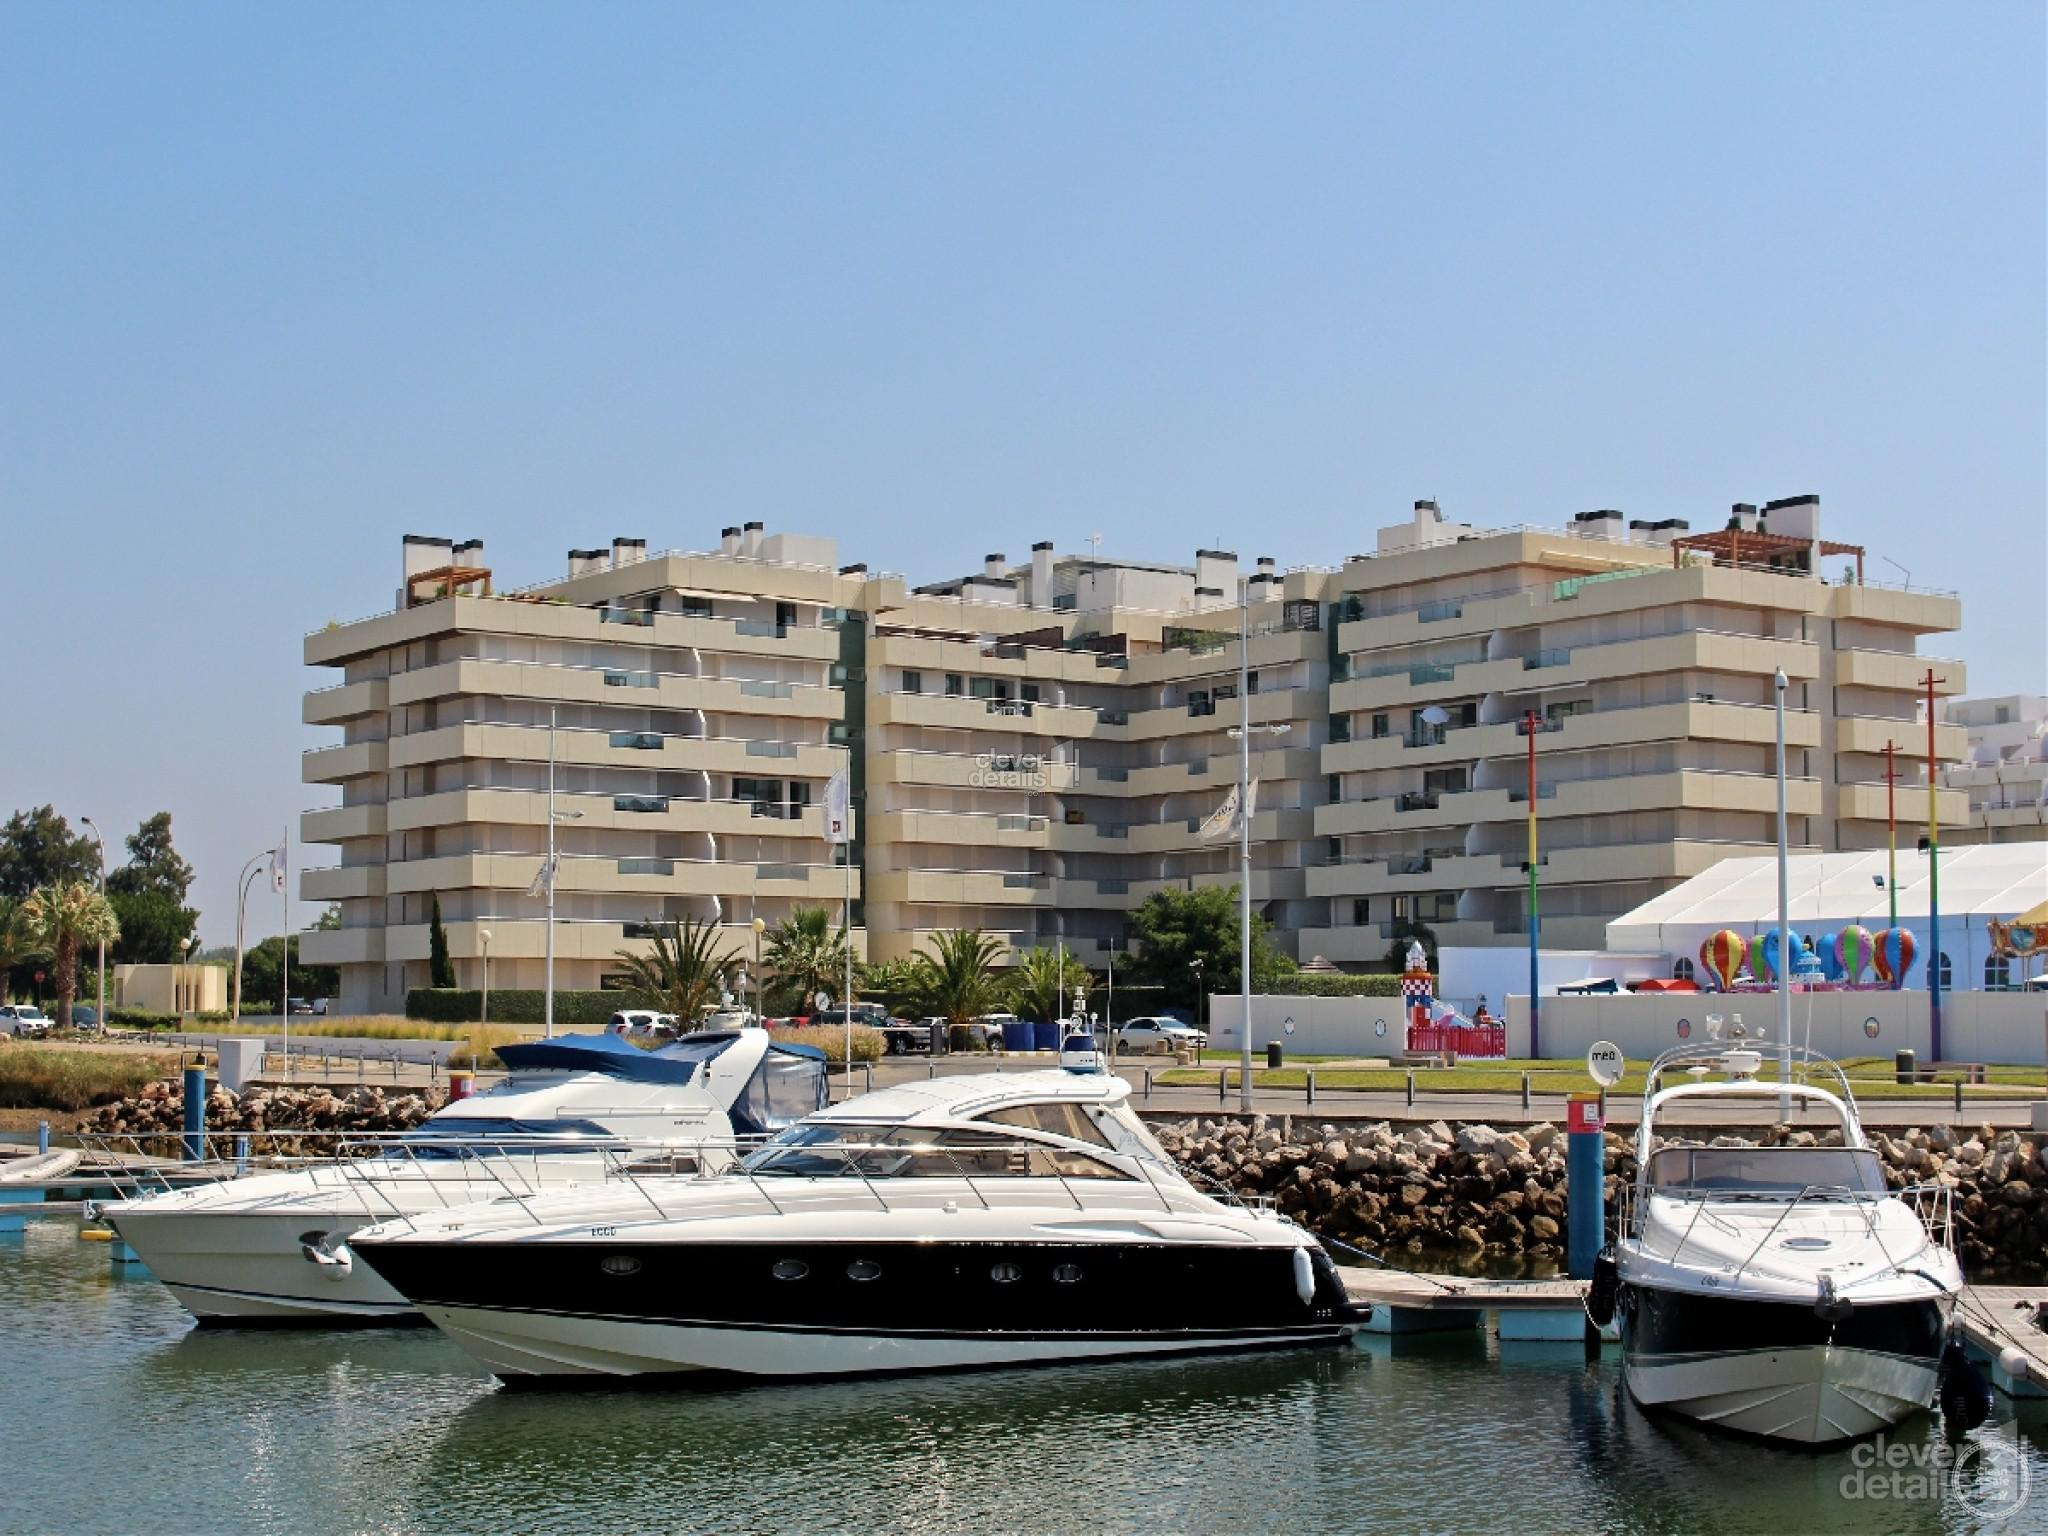 Luxury Holiday Apartments Vilamoura: This ground floor high quality 2 bedroomed apartment is in the luxury complex of Aquamar.